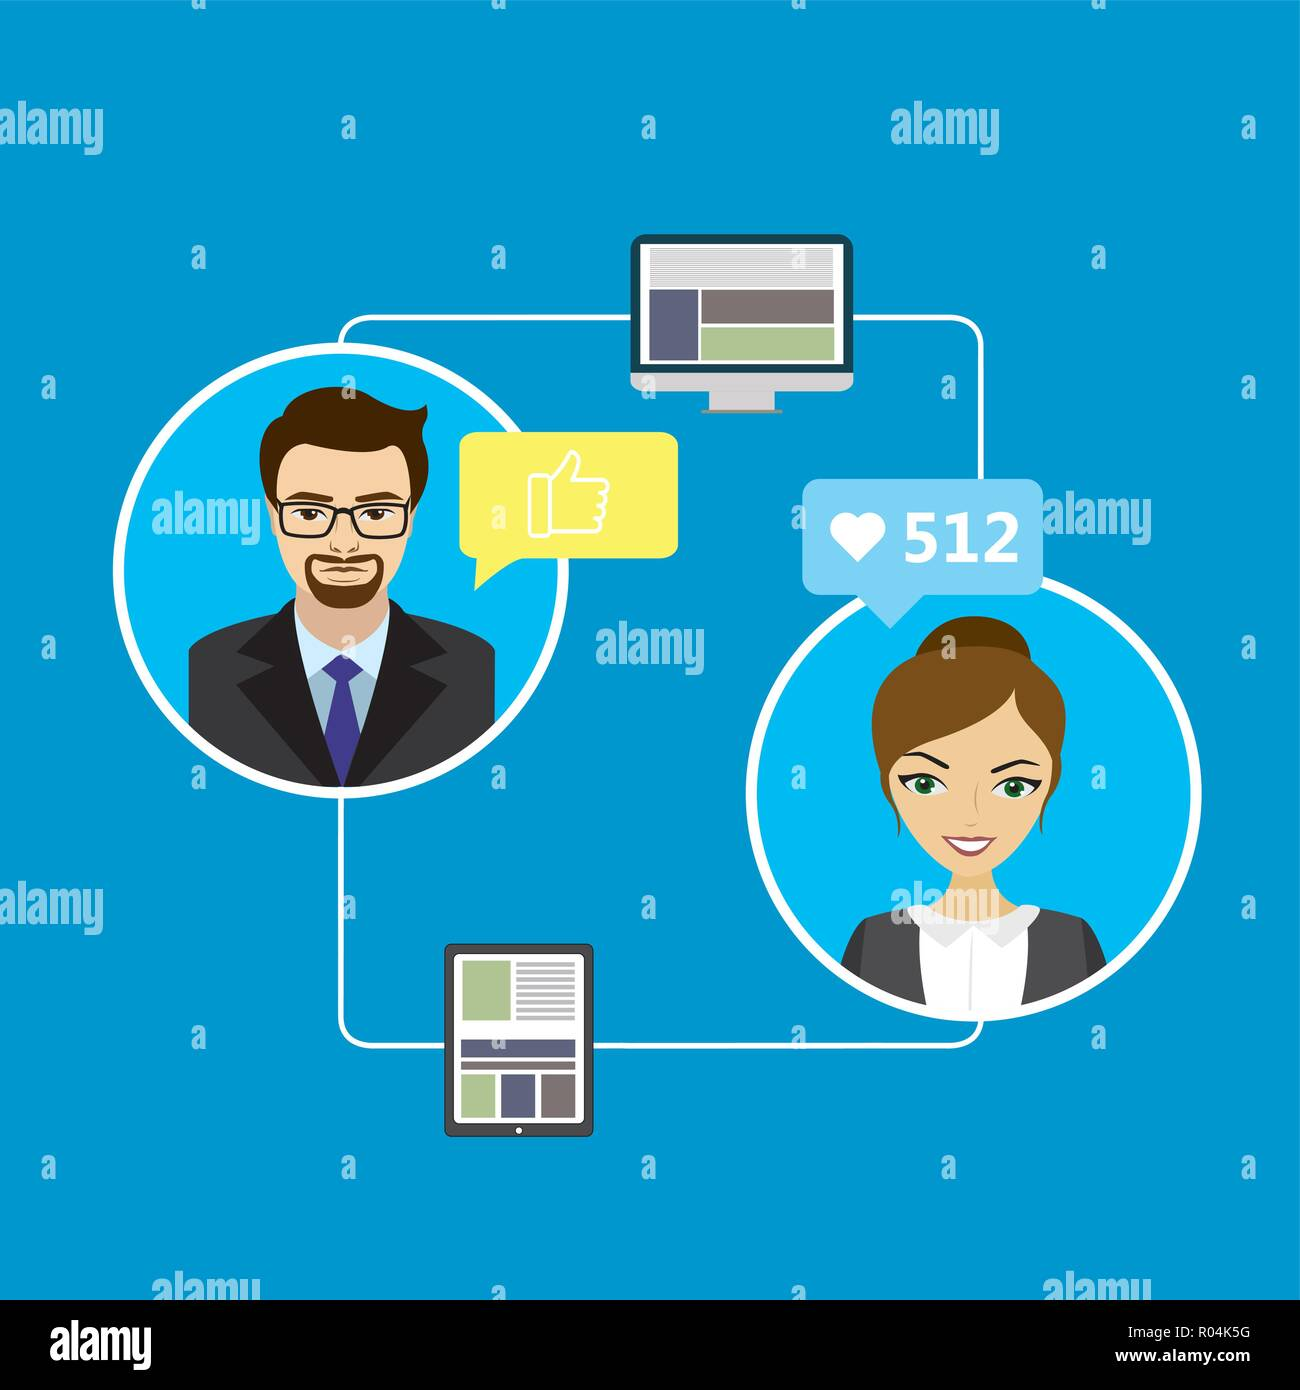 Chat on social networking sites